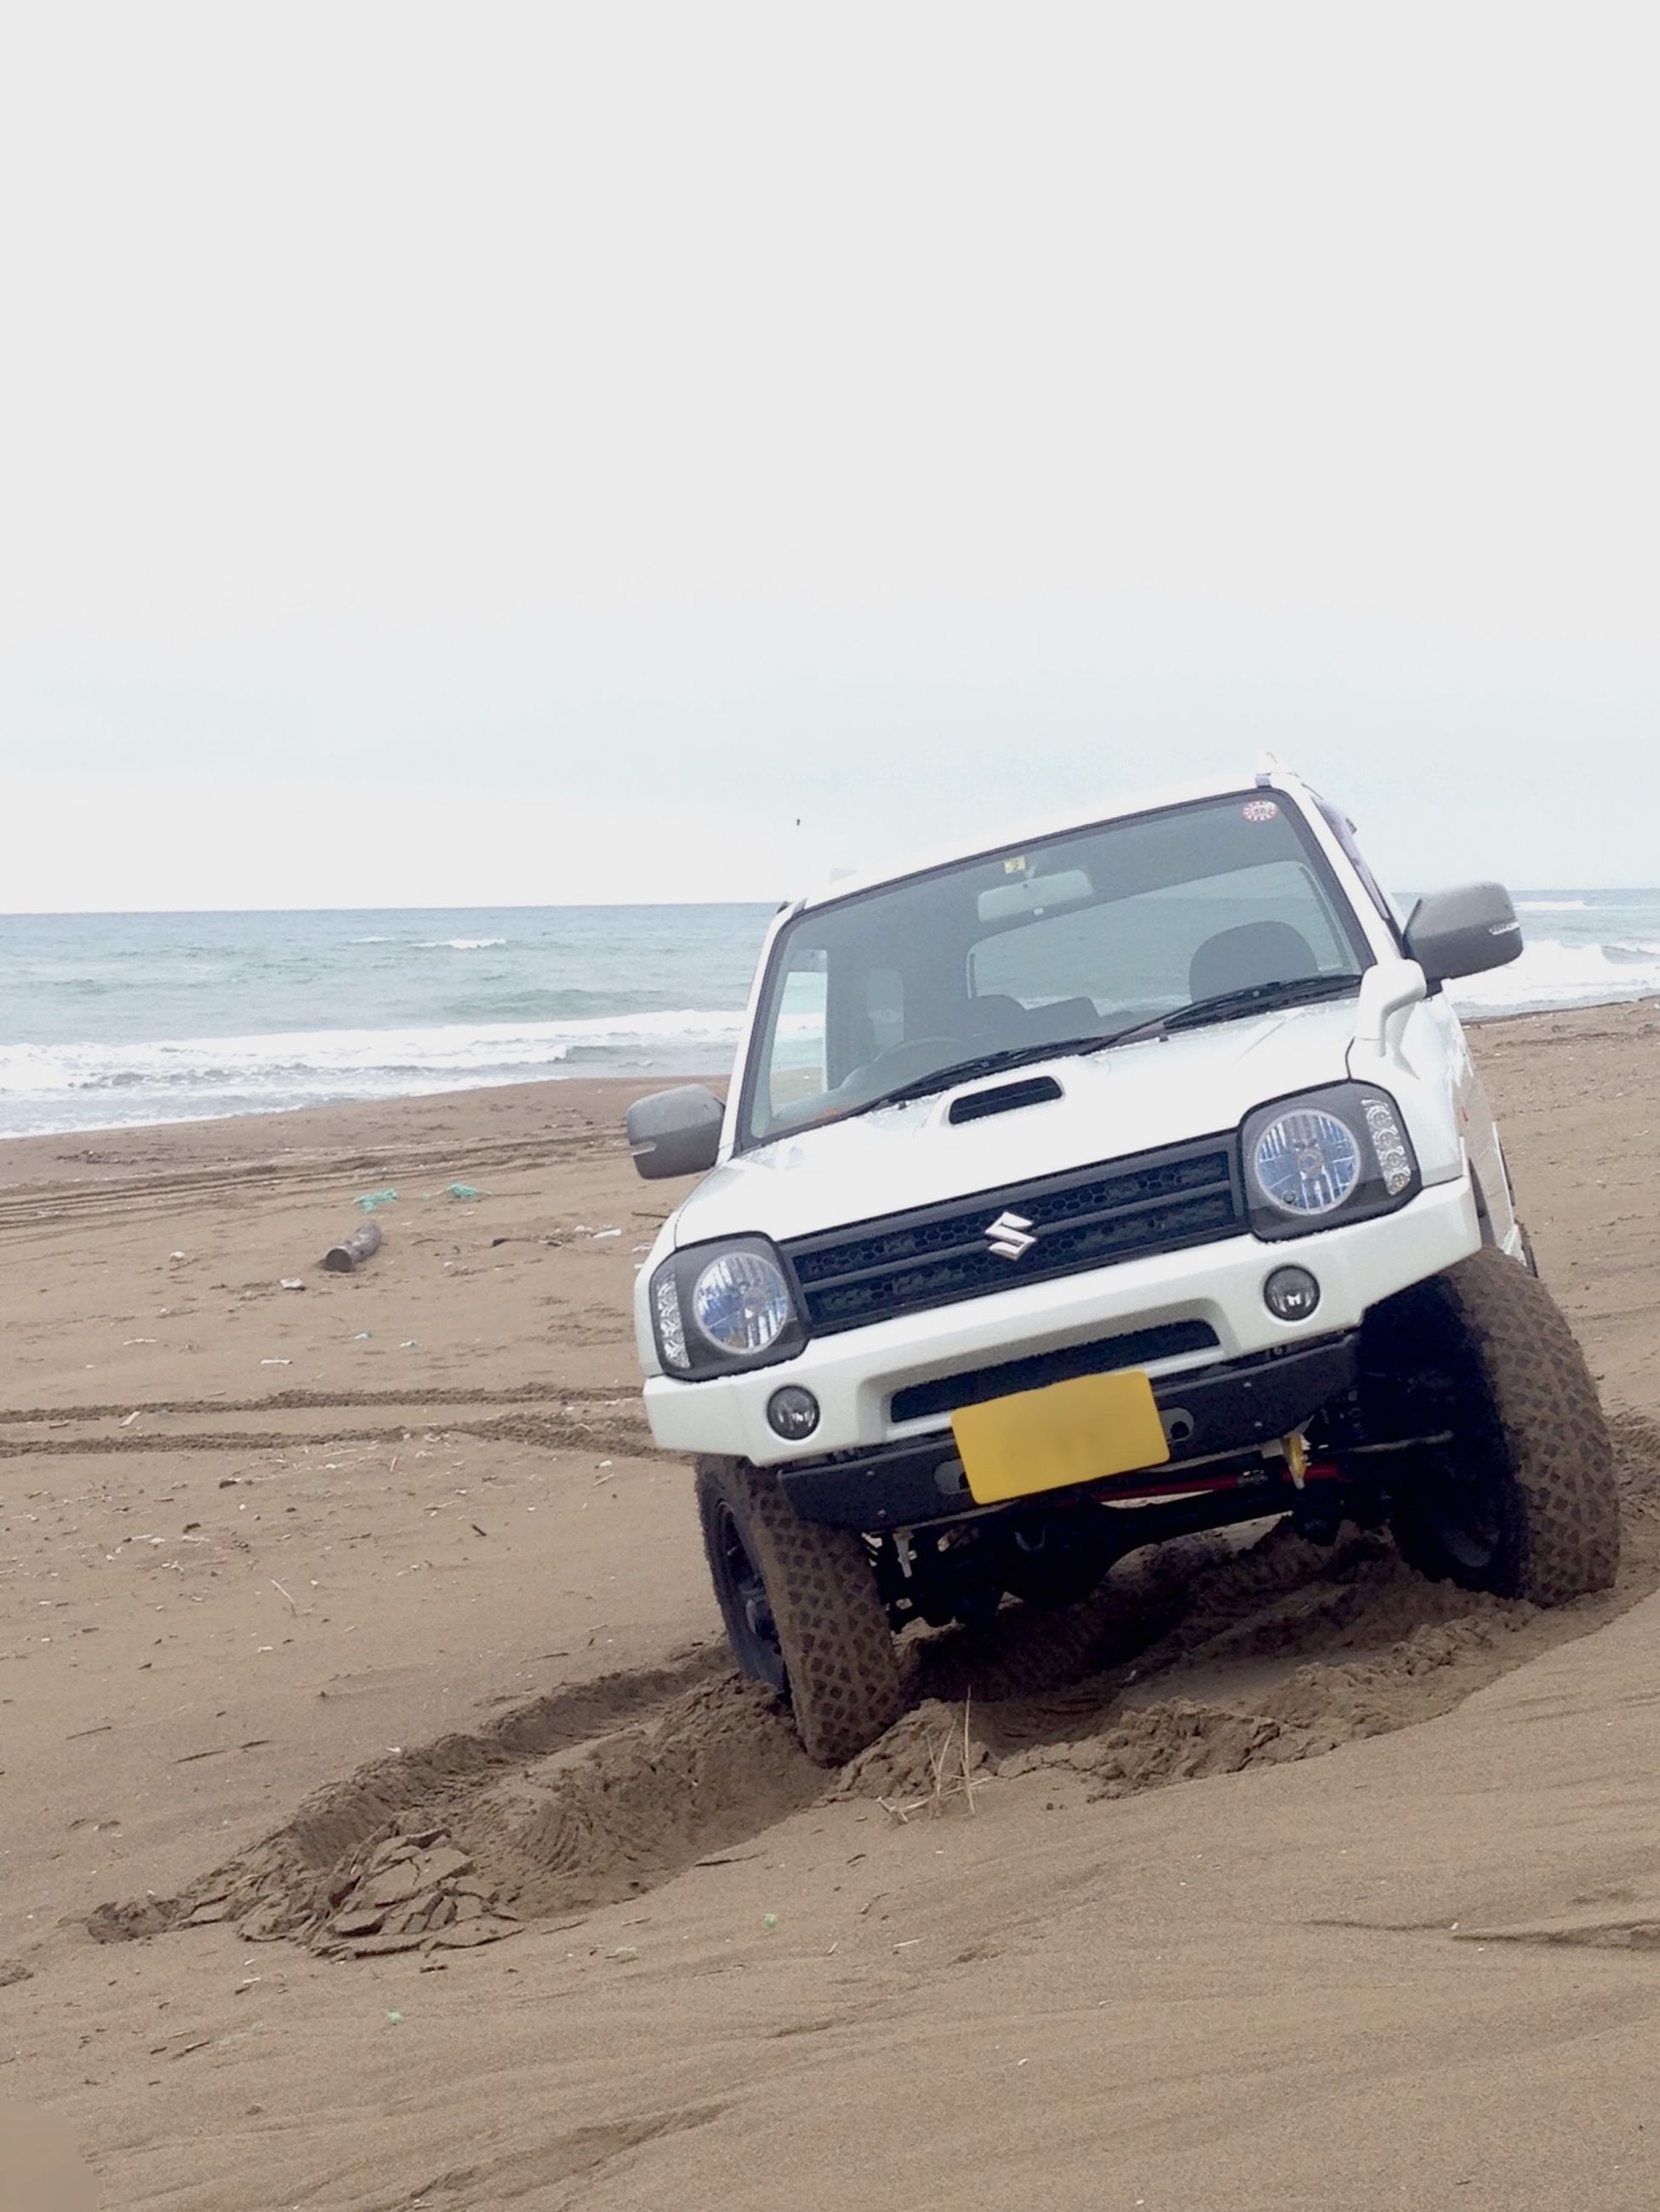 beach, sand, land vehicle, sea, transportation, mode of transport, horizon over water, shore, car, clear sky, day, stationary, sunlight, outdoors, sky, travel, copy space, nature, water, no people